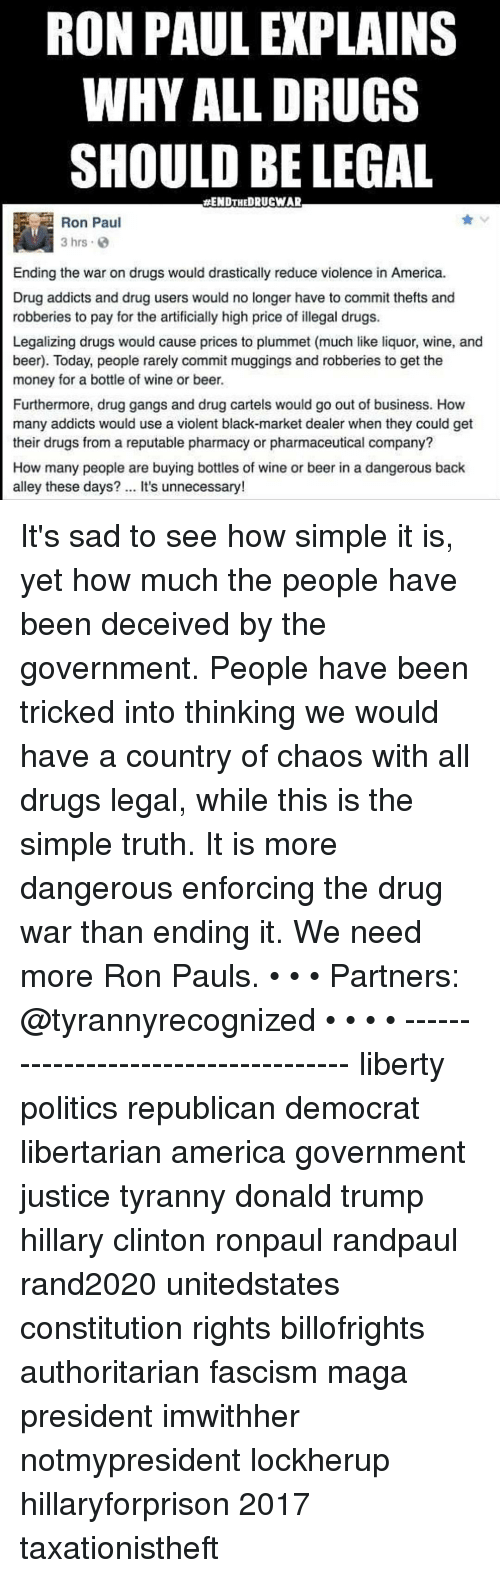 the government should do more help drug addicts Addiction to the drugs and spending any money they do acquire on more drugs can government should be doing more to help drug addict in poverty is there.